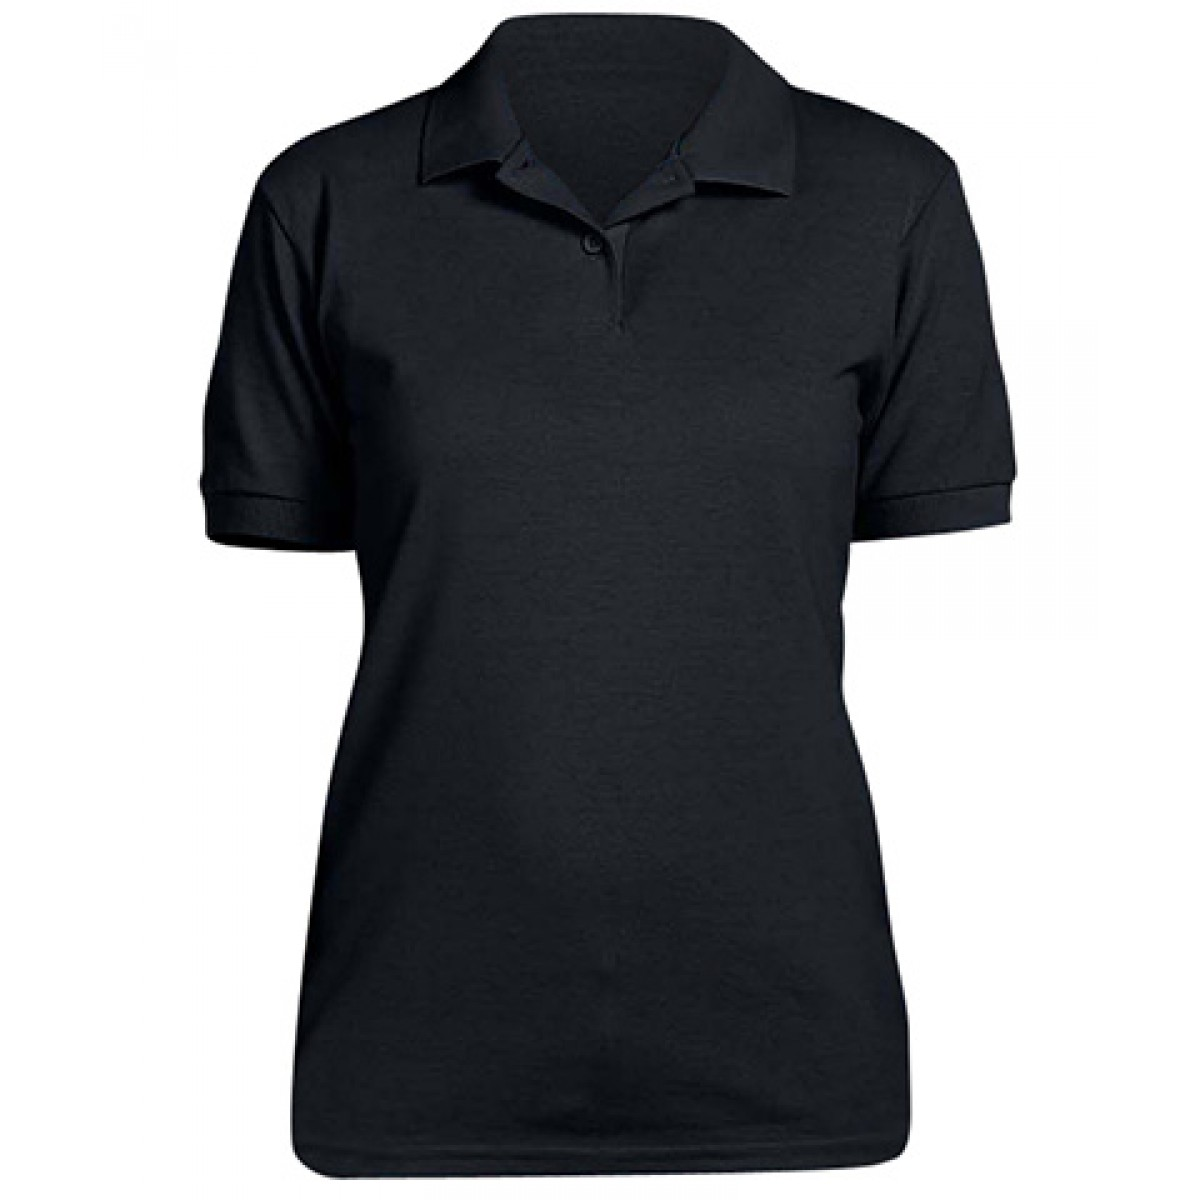 Ladies' 6.5 oz. Piqué Sport Shirt-Black-2XL